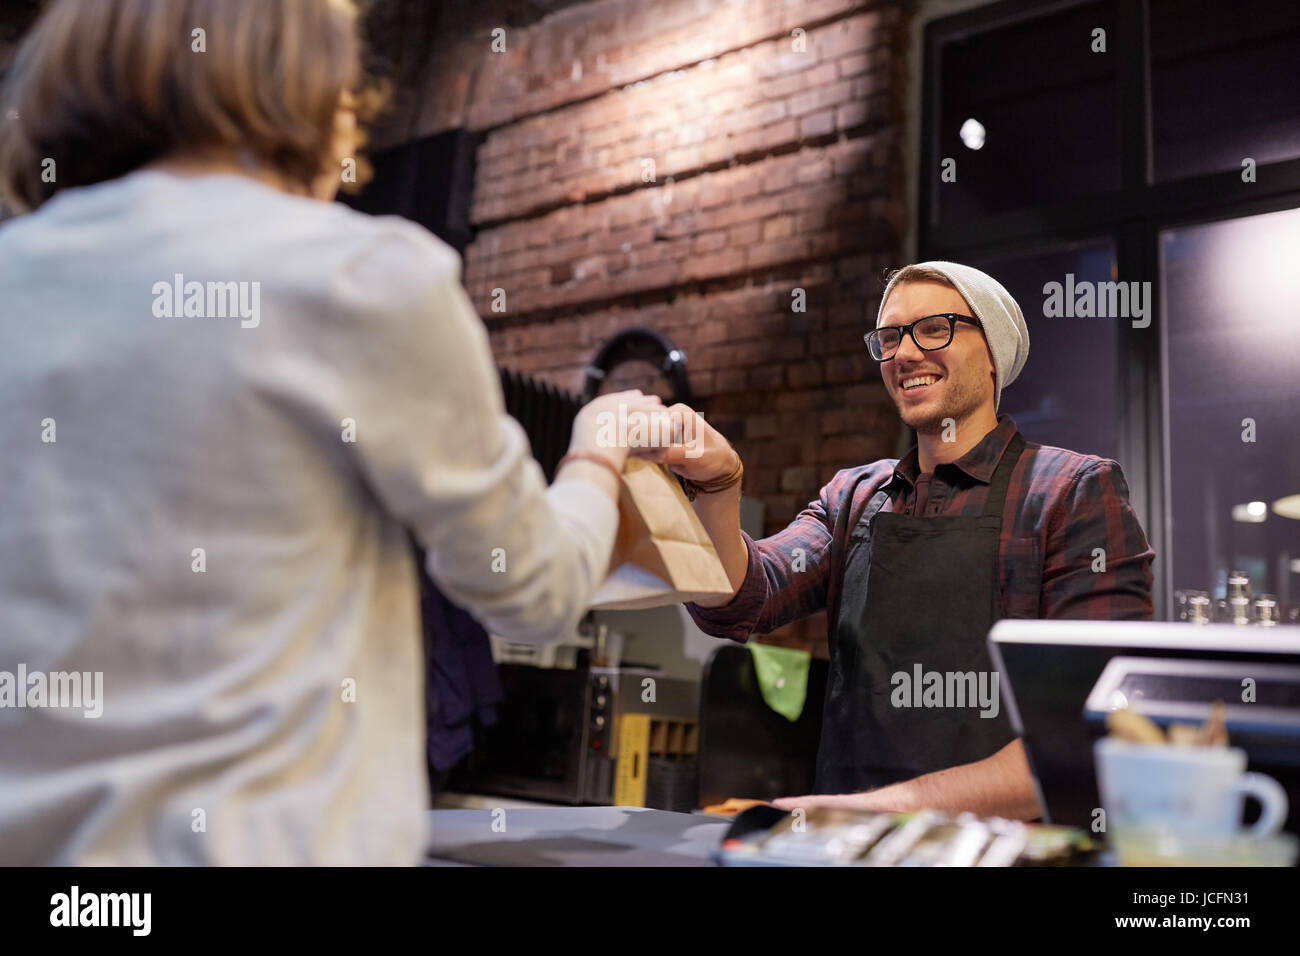 woman taking paper bag from seller at cafe - Stock Image